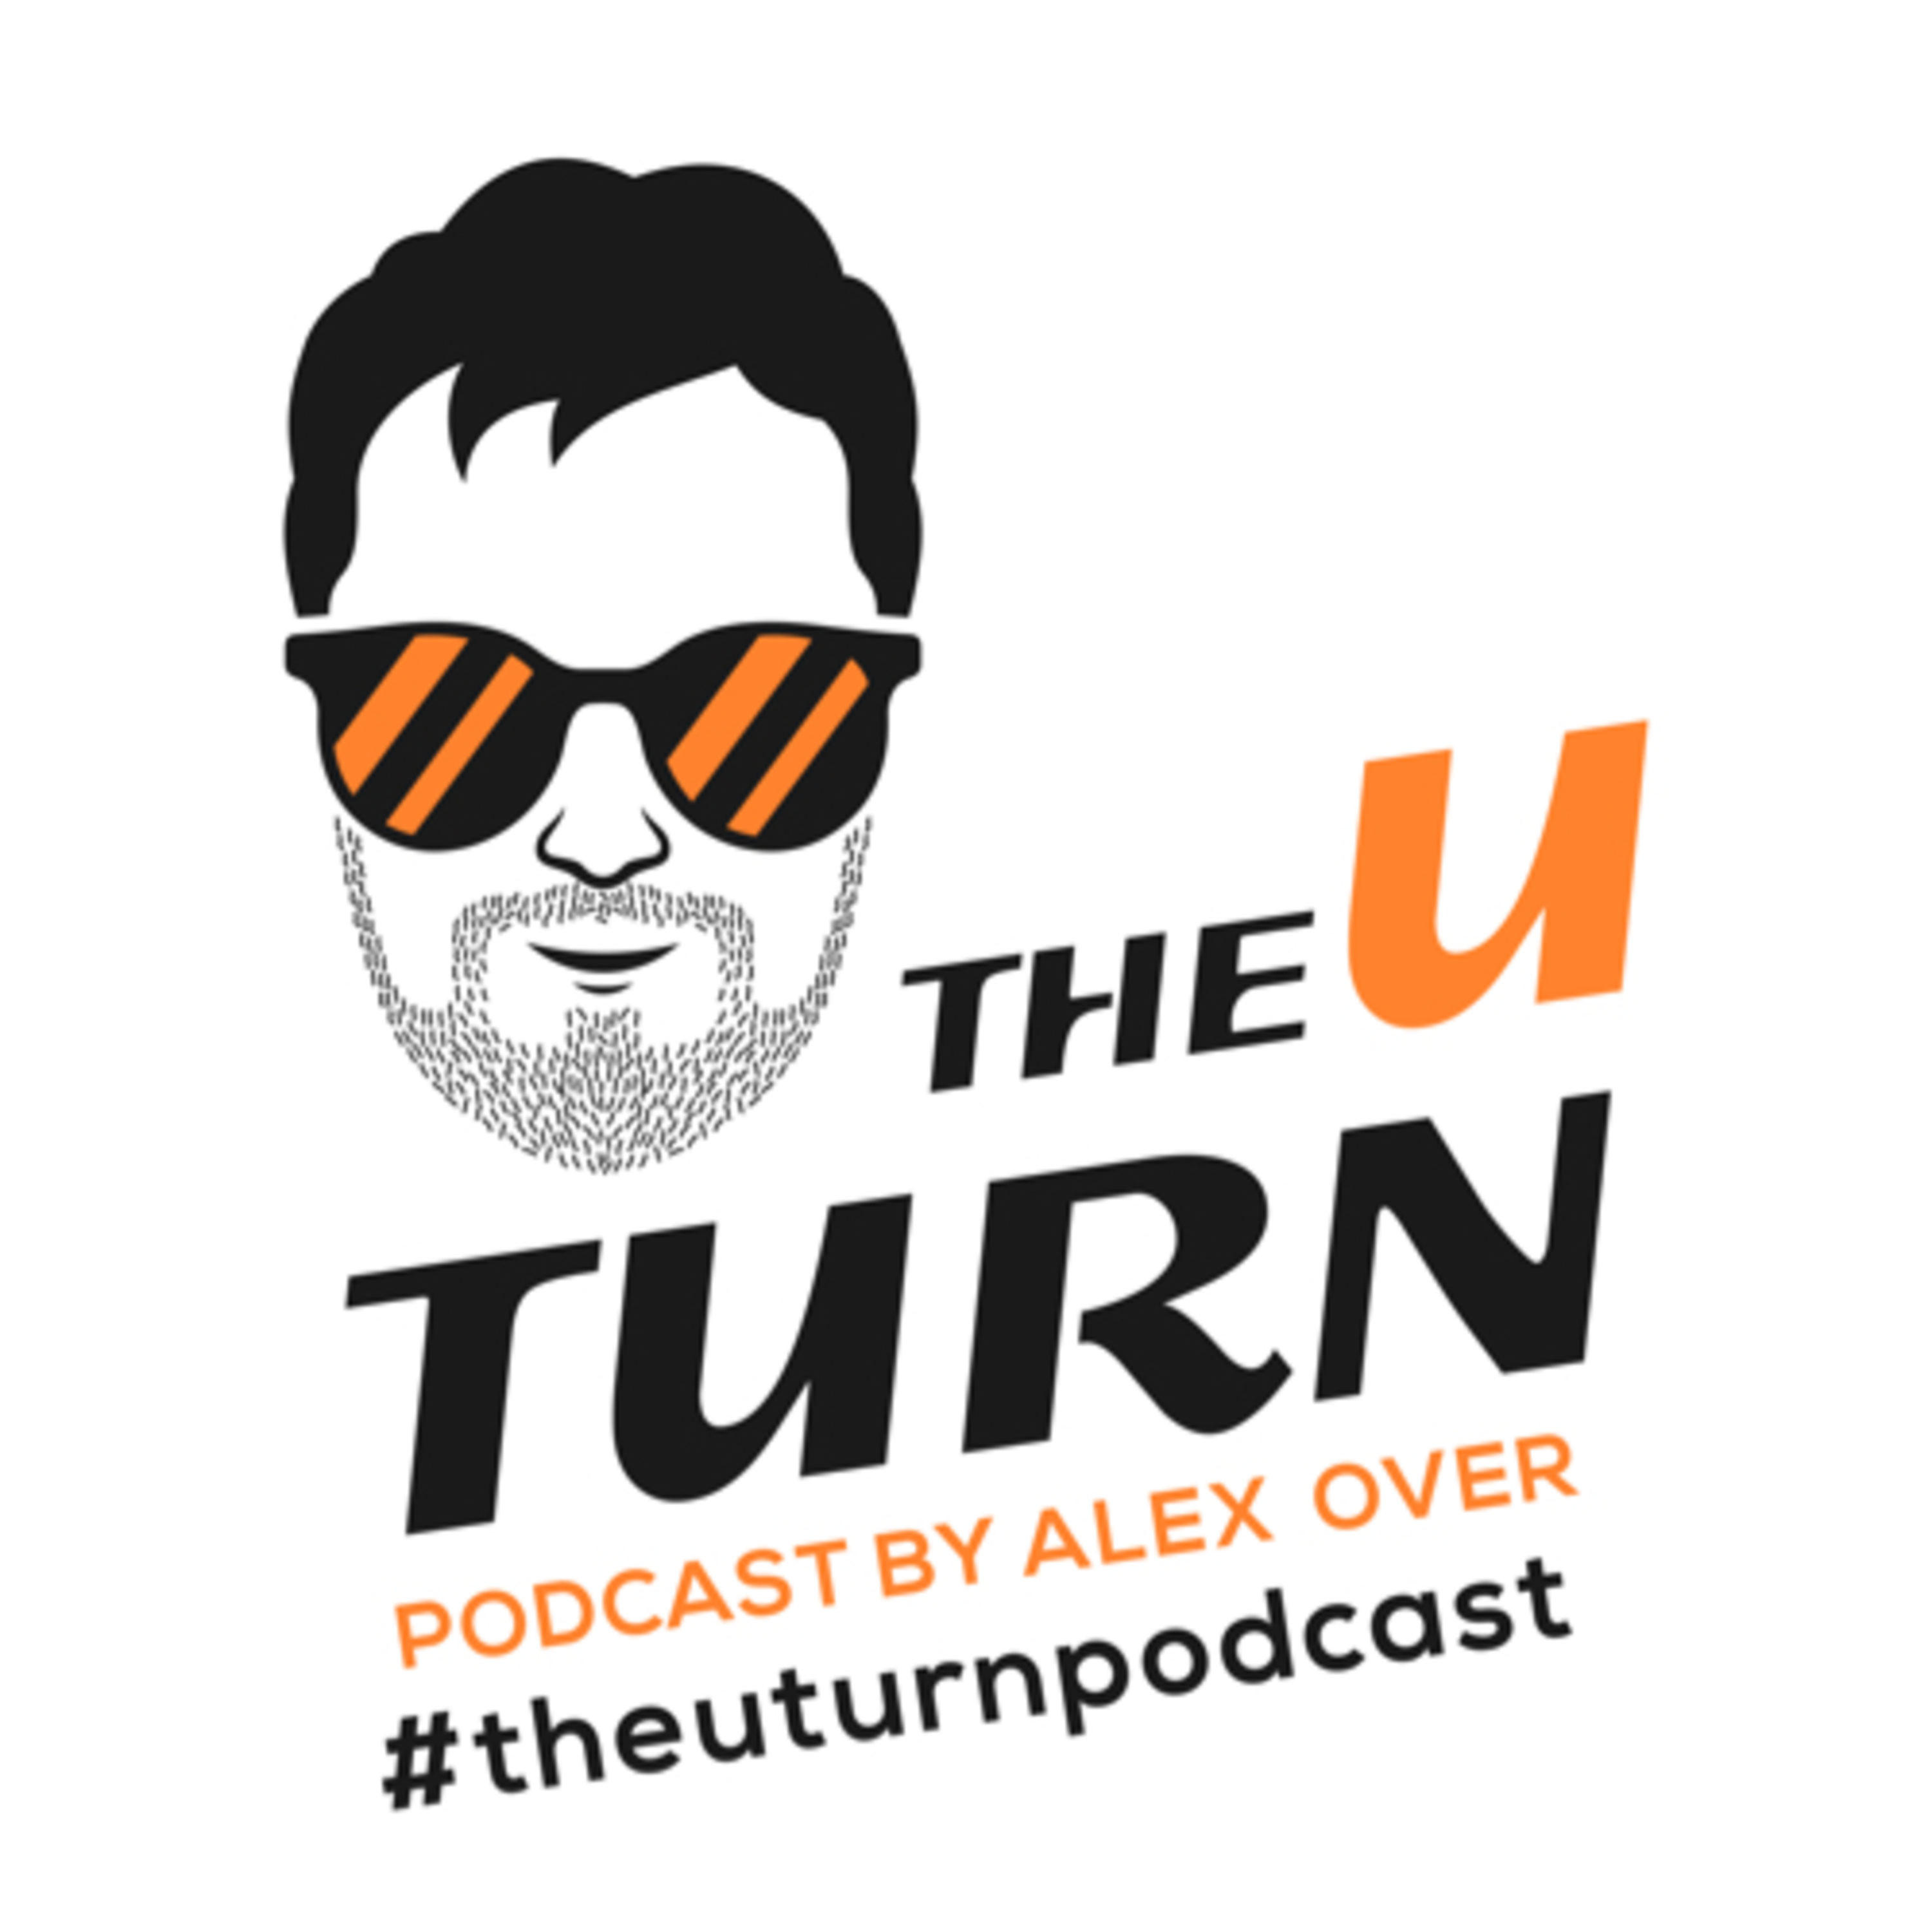 The U Turn Podcast - By Alex Over